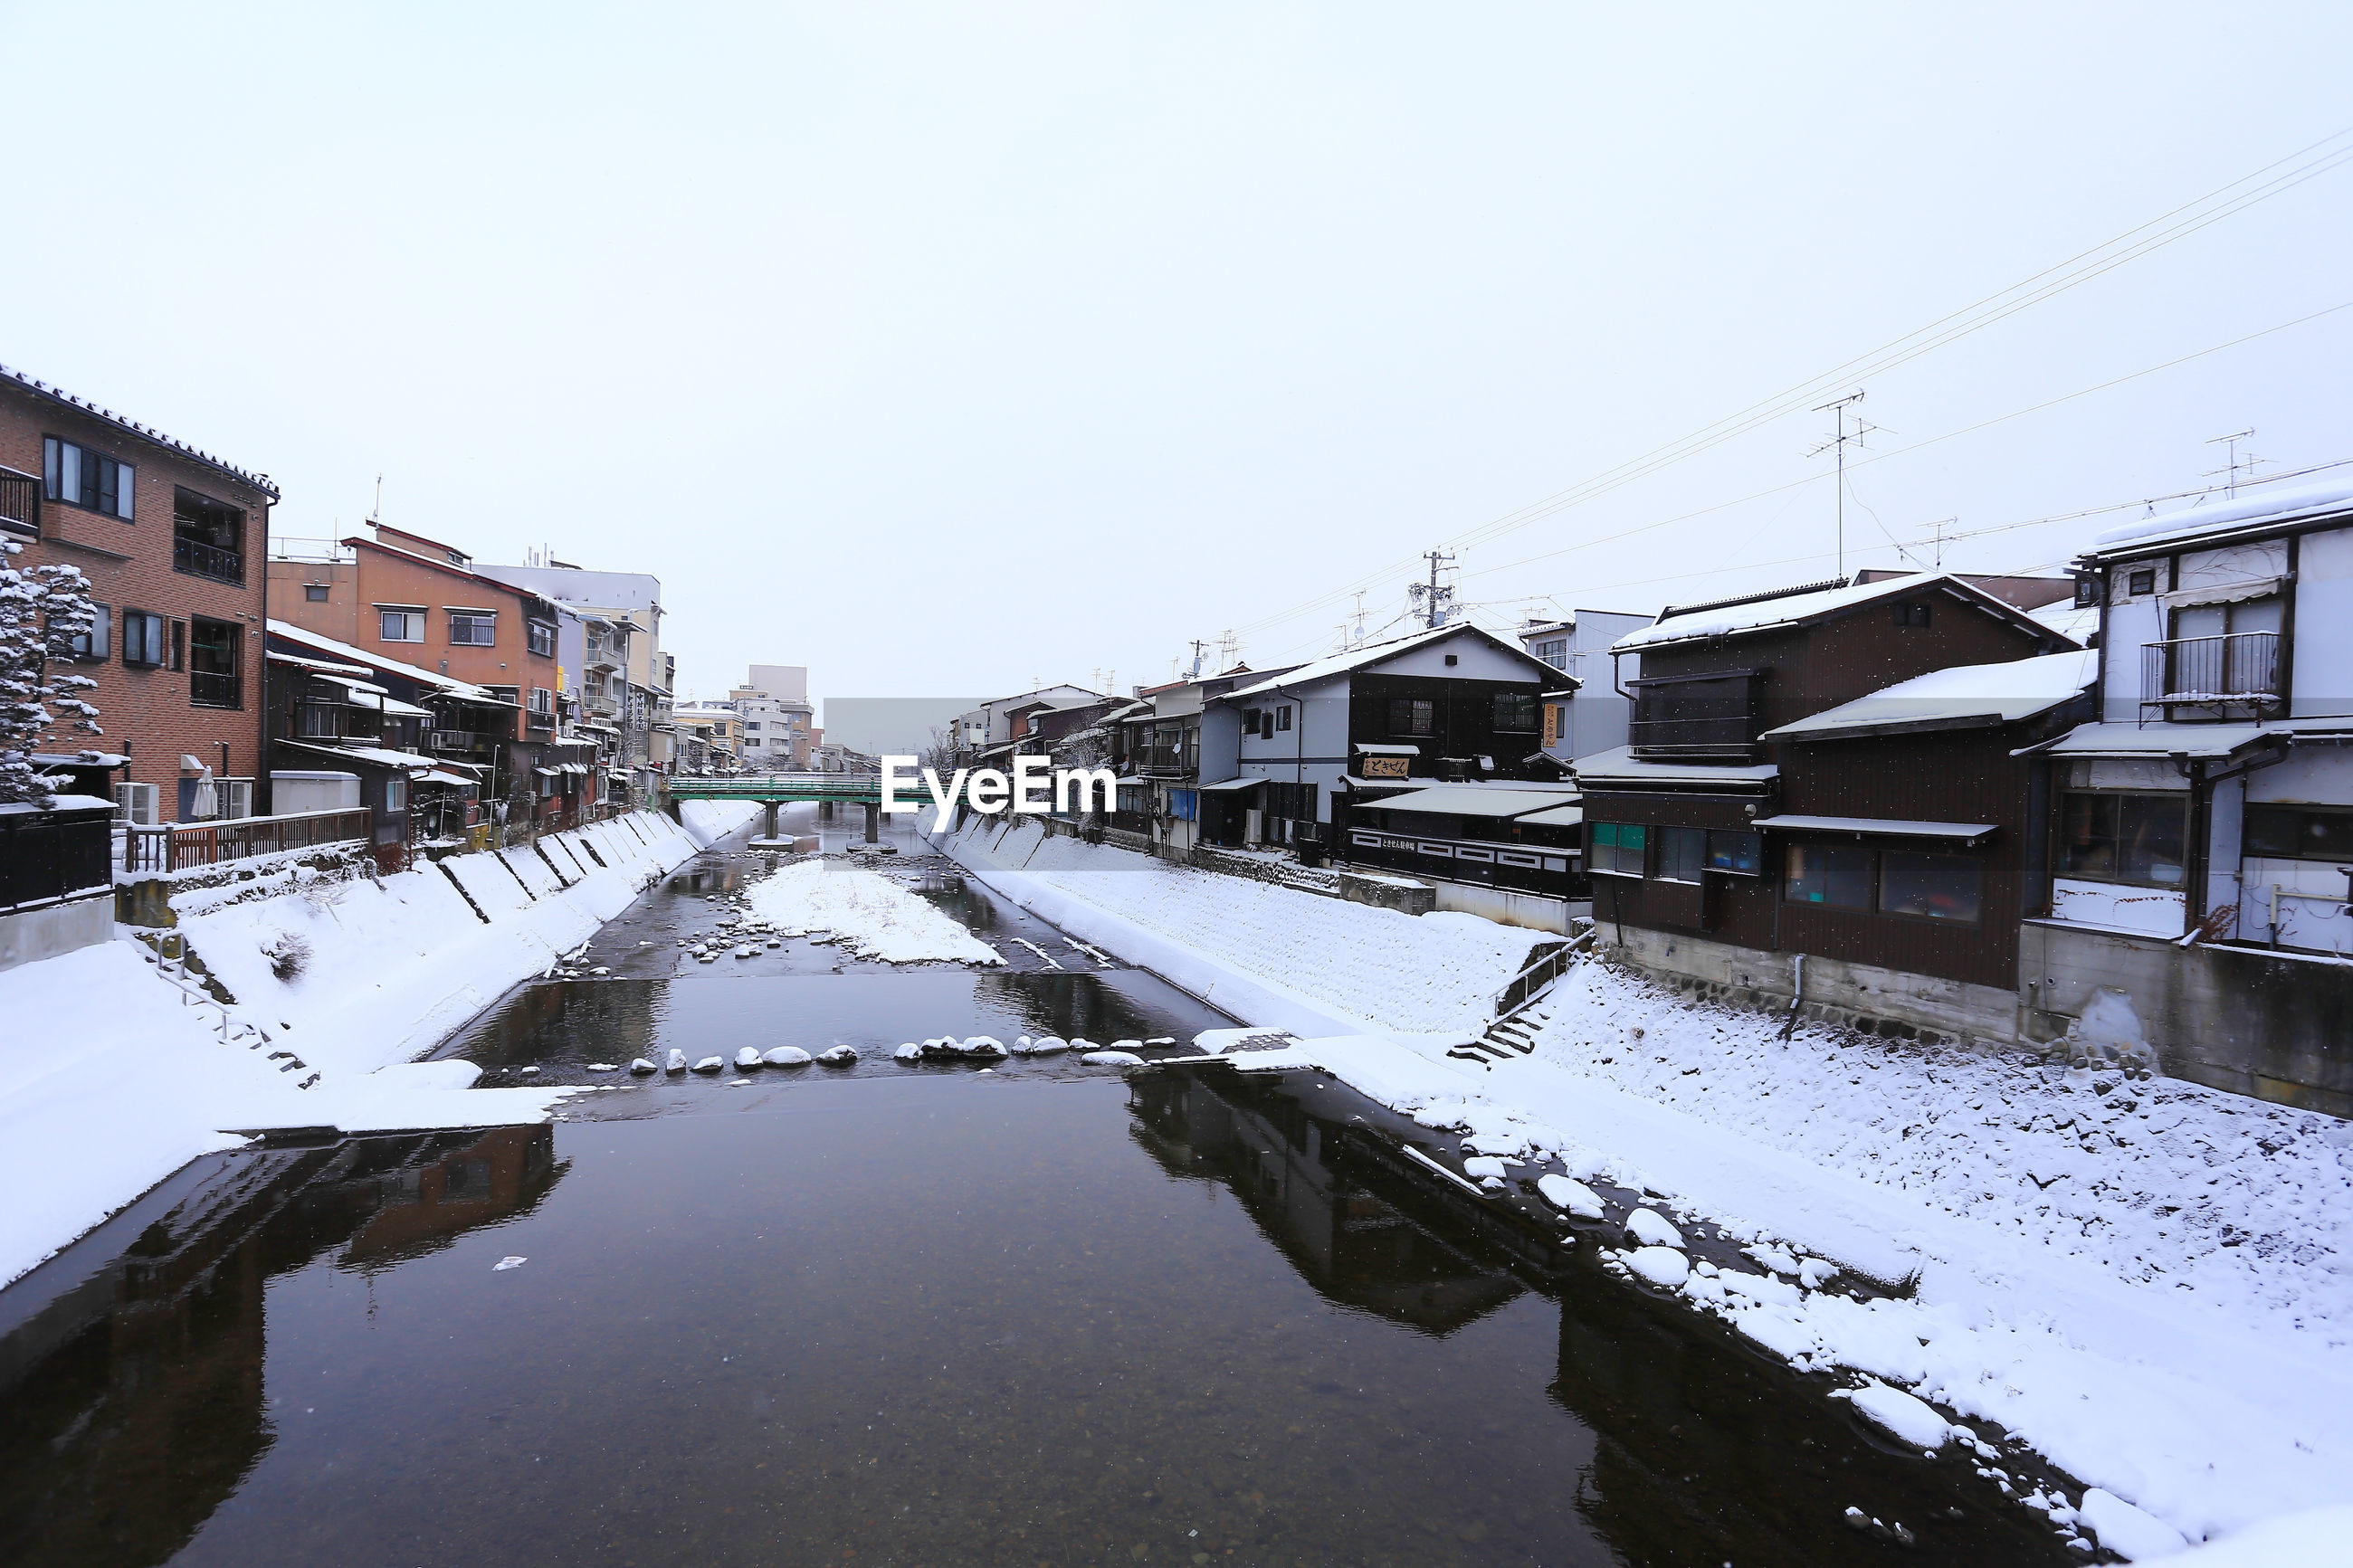 SNOW COVERED BUILDINGS BY CANAL AGAINST SKY